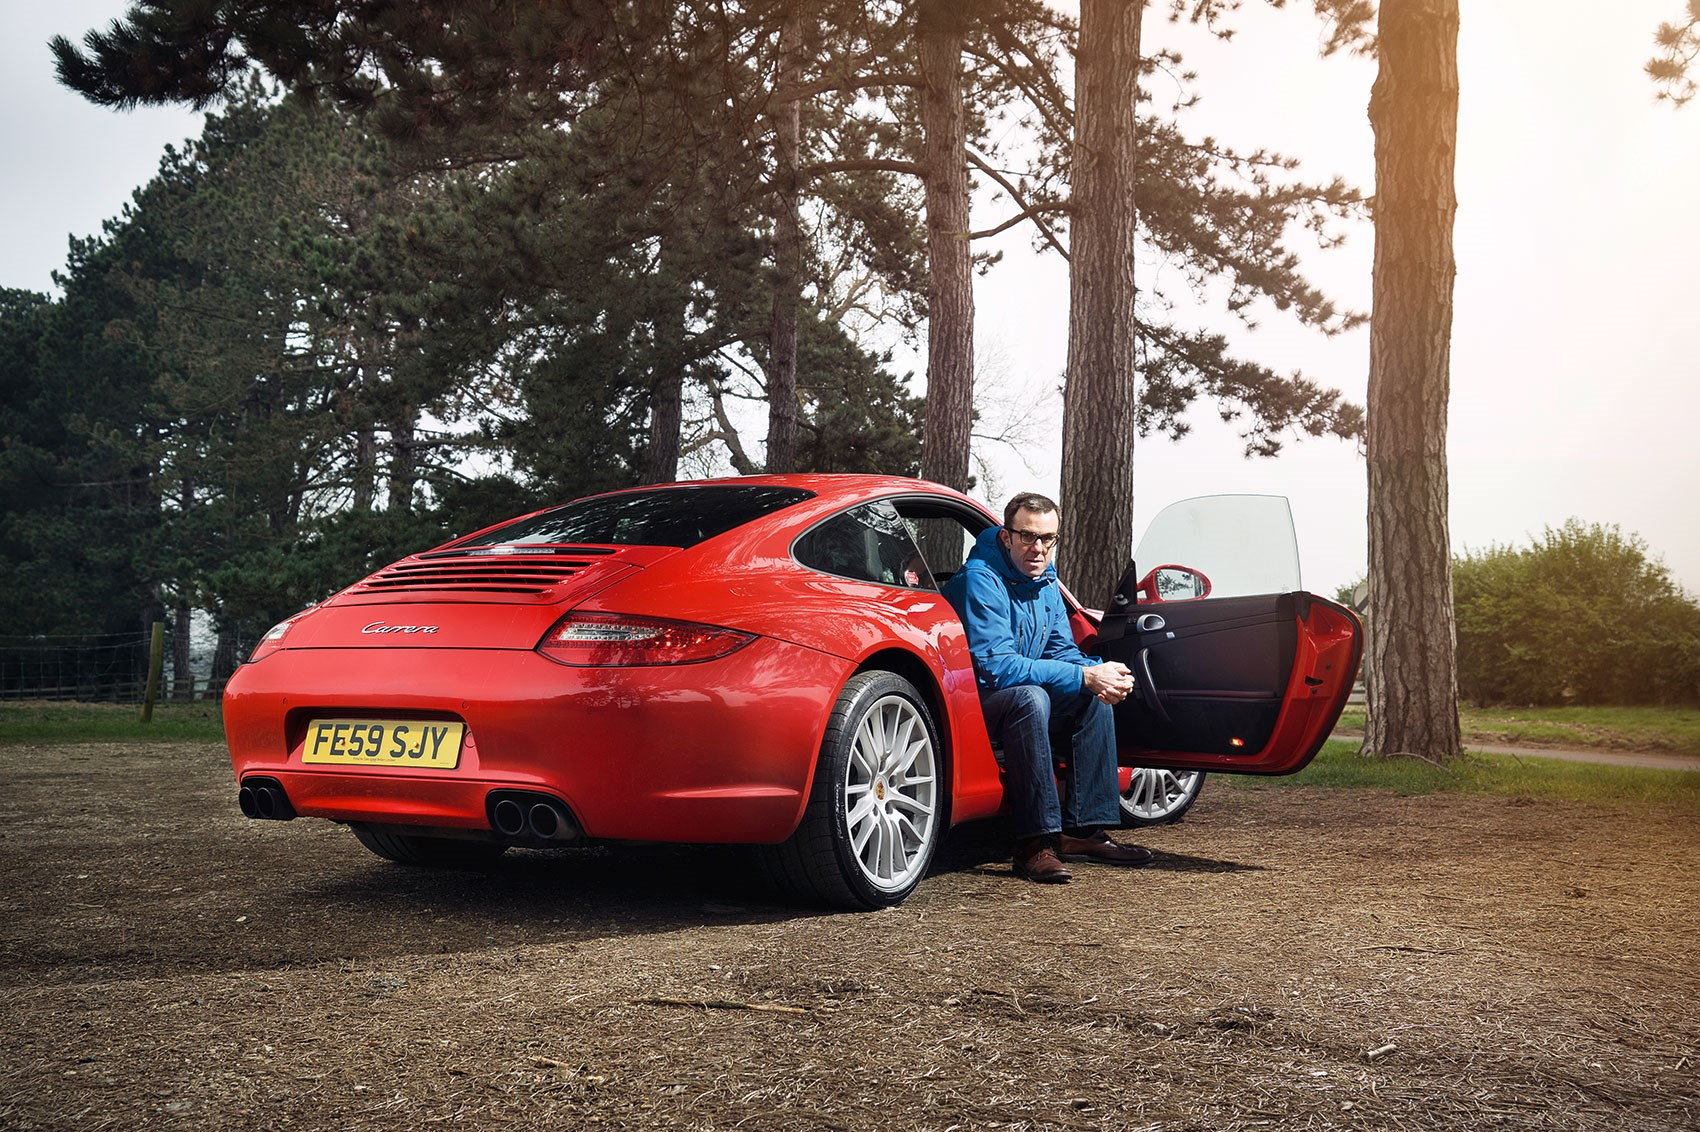 porsche 911 carrera: used 997 long-term test review (2015) | car